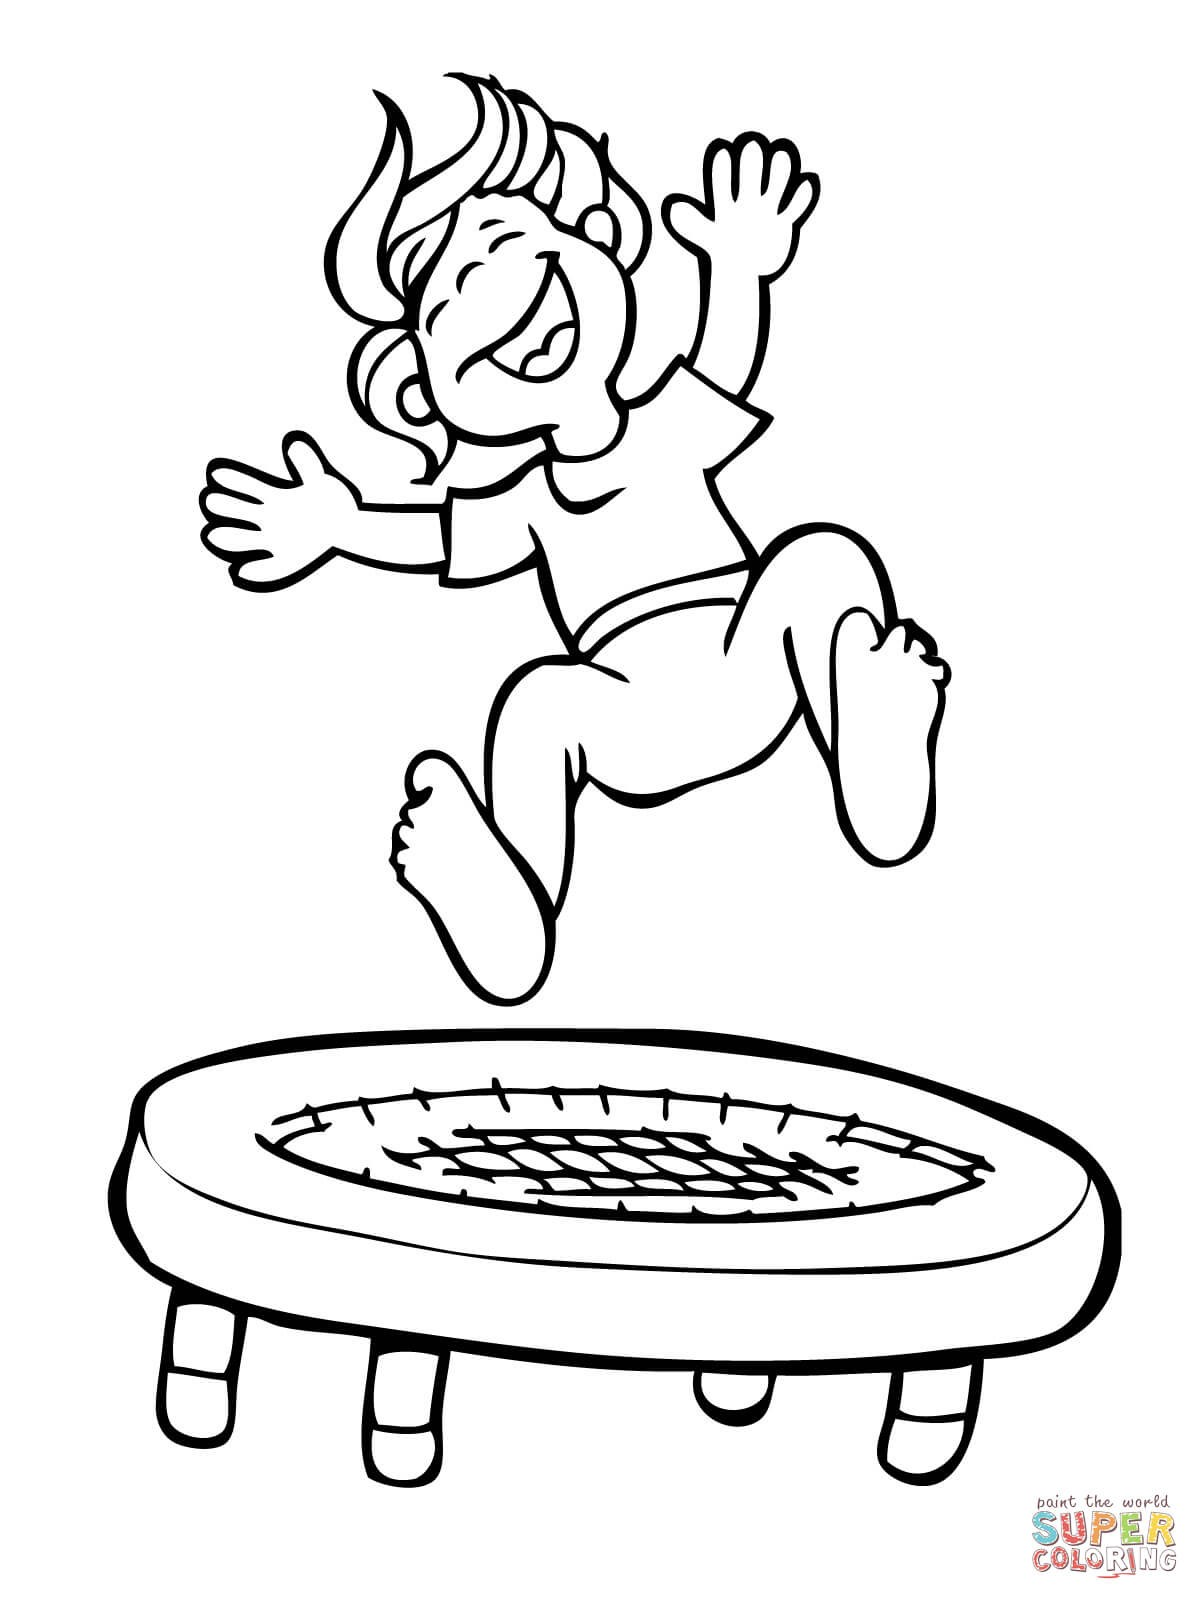 1200x1600 Diego Coloring Pages With Monkey For Kids Elegant Coloring Pages